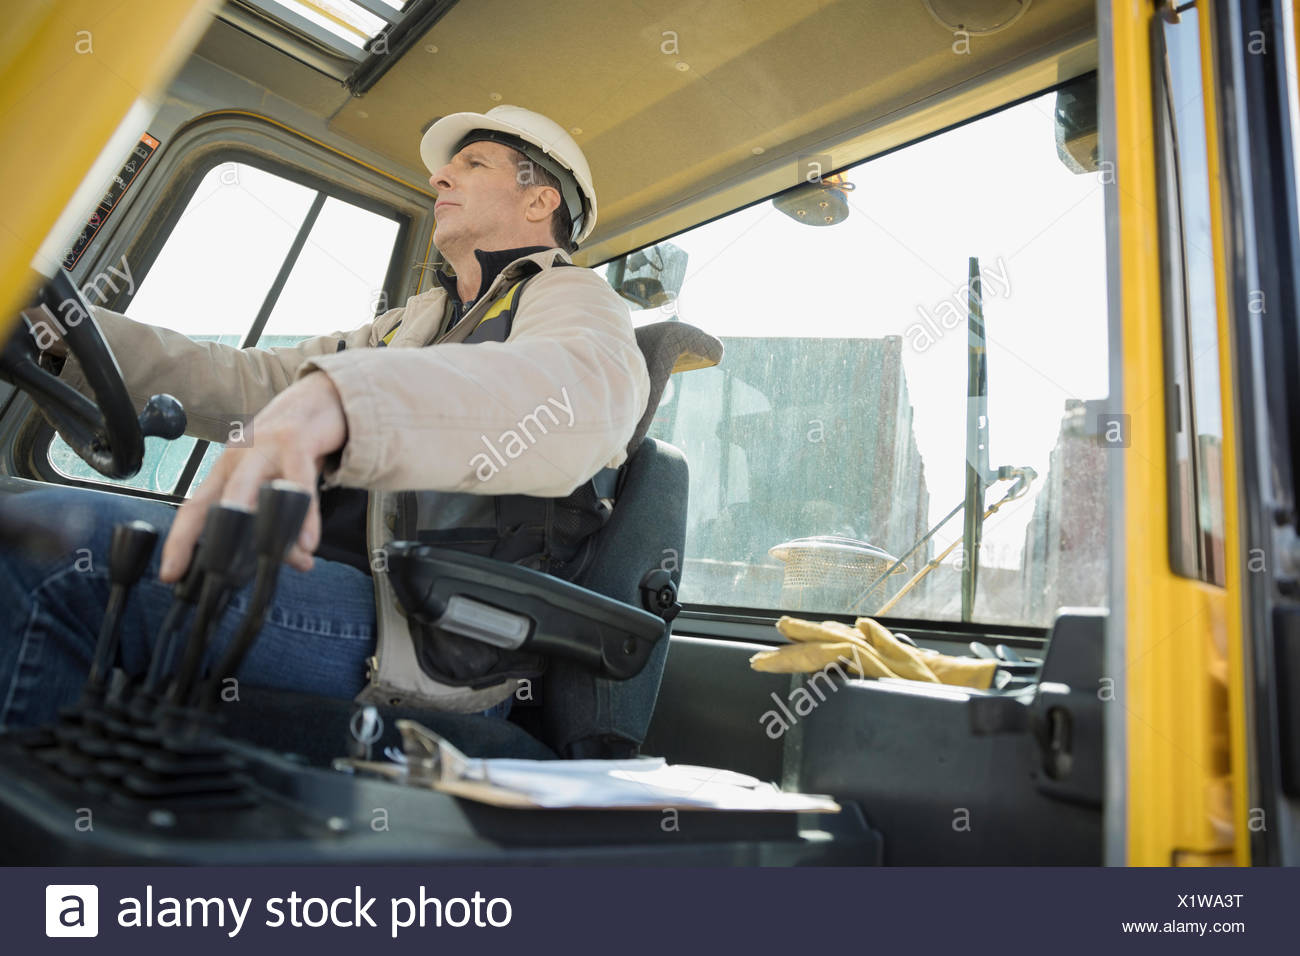 Male worker driving forklift in container yard - Stock Image